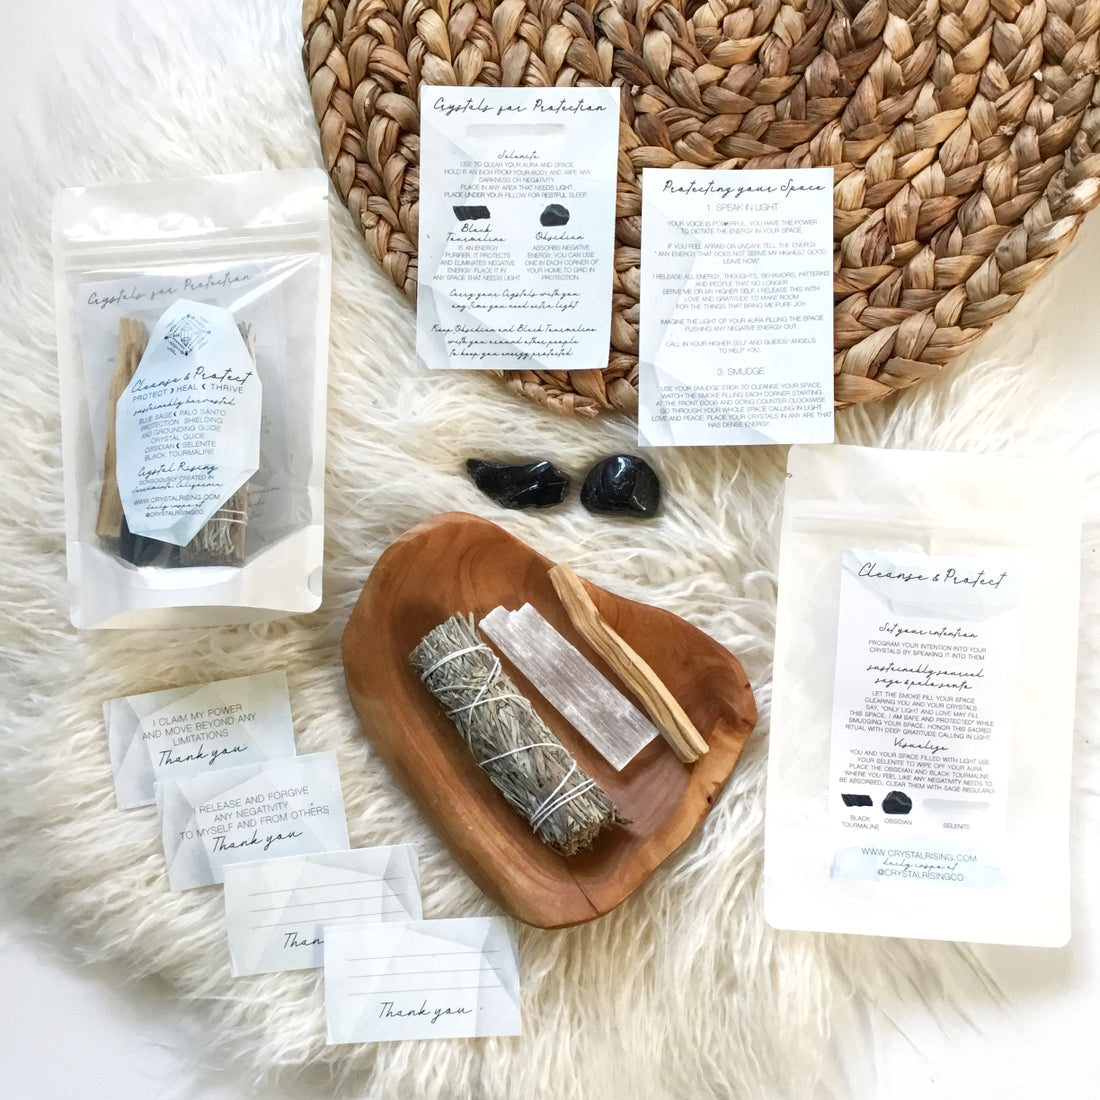 Cleanse and Protect Ritual Kit  - for sale  online at Modest Hemp Co.